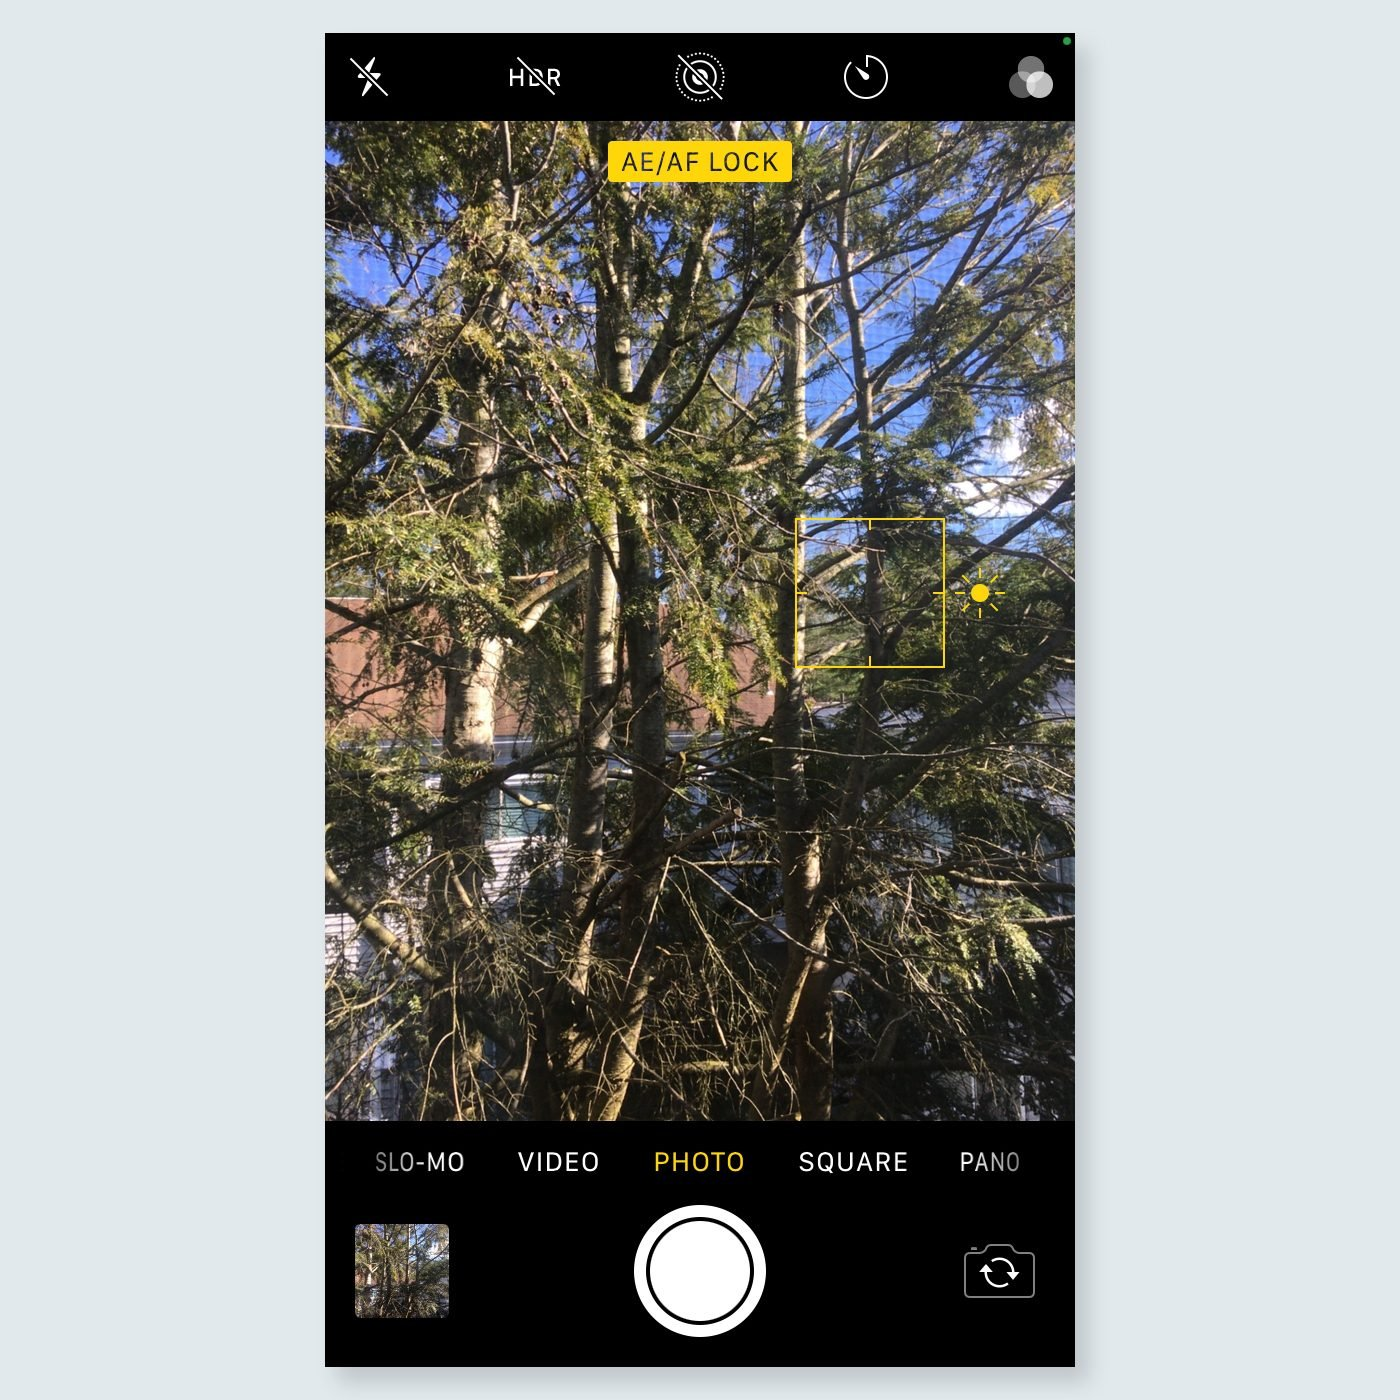 iphone tricks - lock the camera's focus and exposure